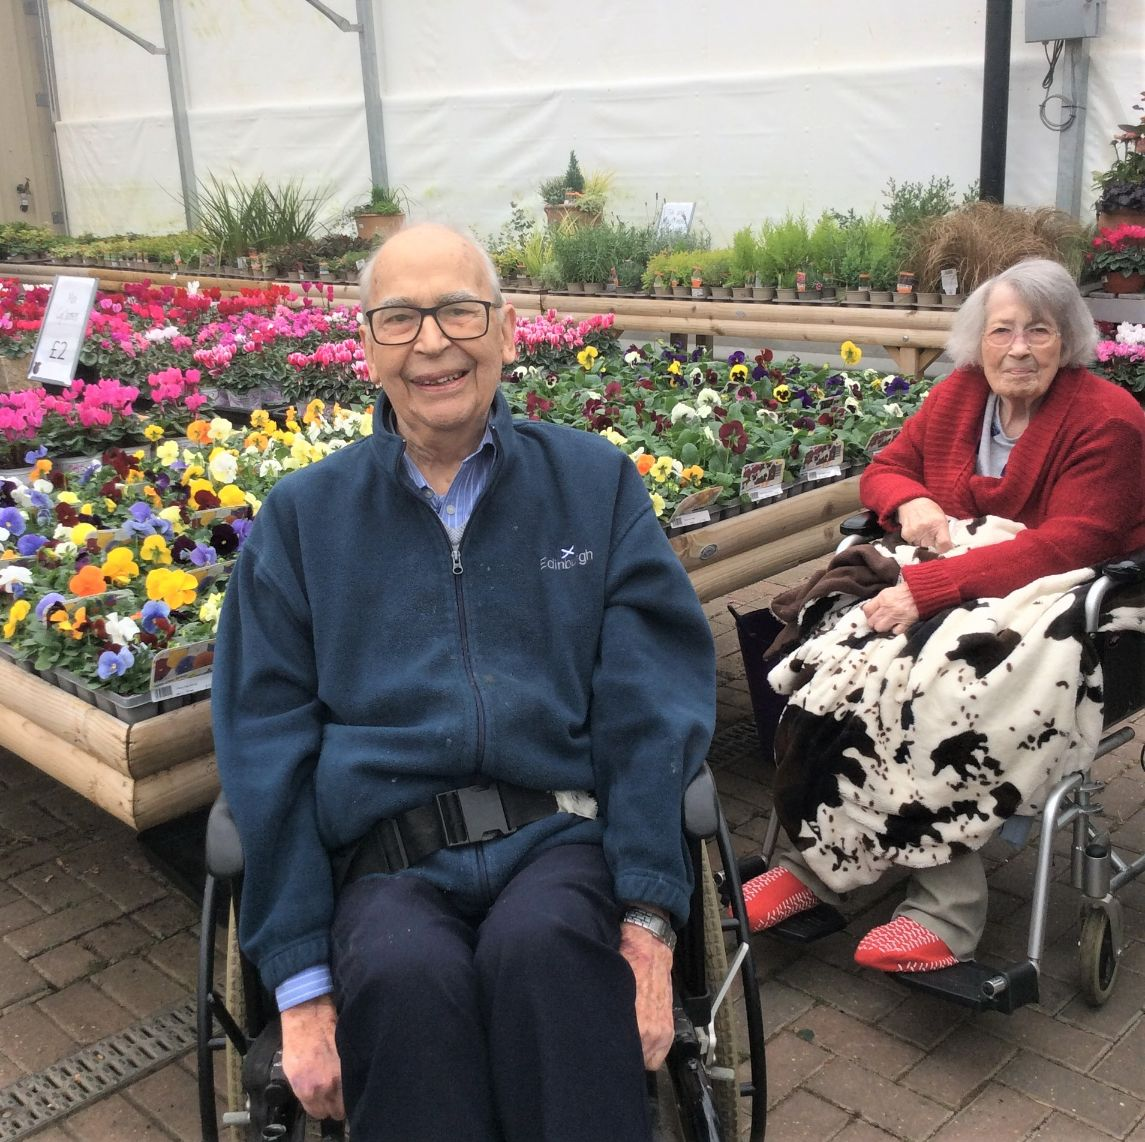 Albany Care Home, Oxfordshire-Residents Father Peter and Mrs Doyle enjoying the flowers at the garden centre